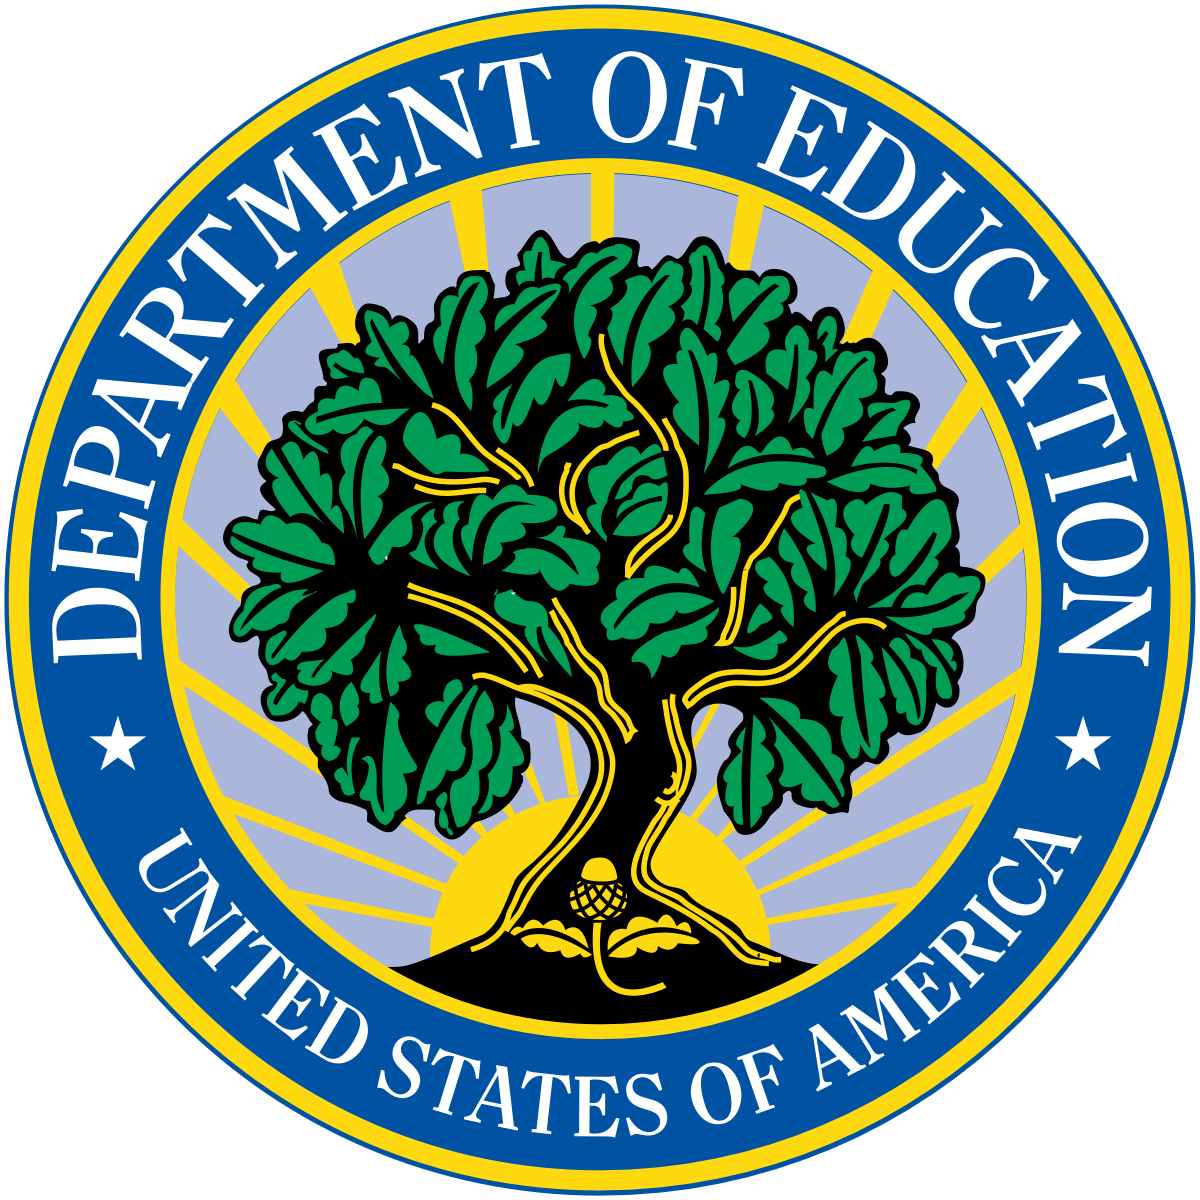 Seal_of_the_United_States_Department_of_Education.svg